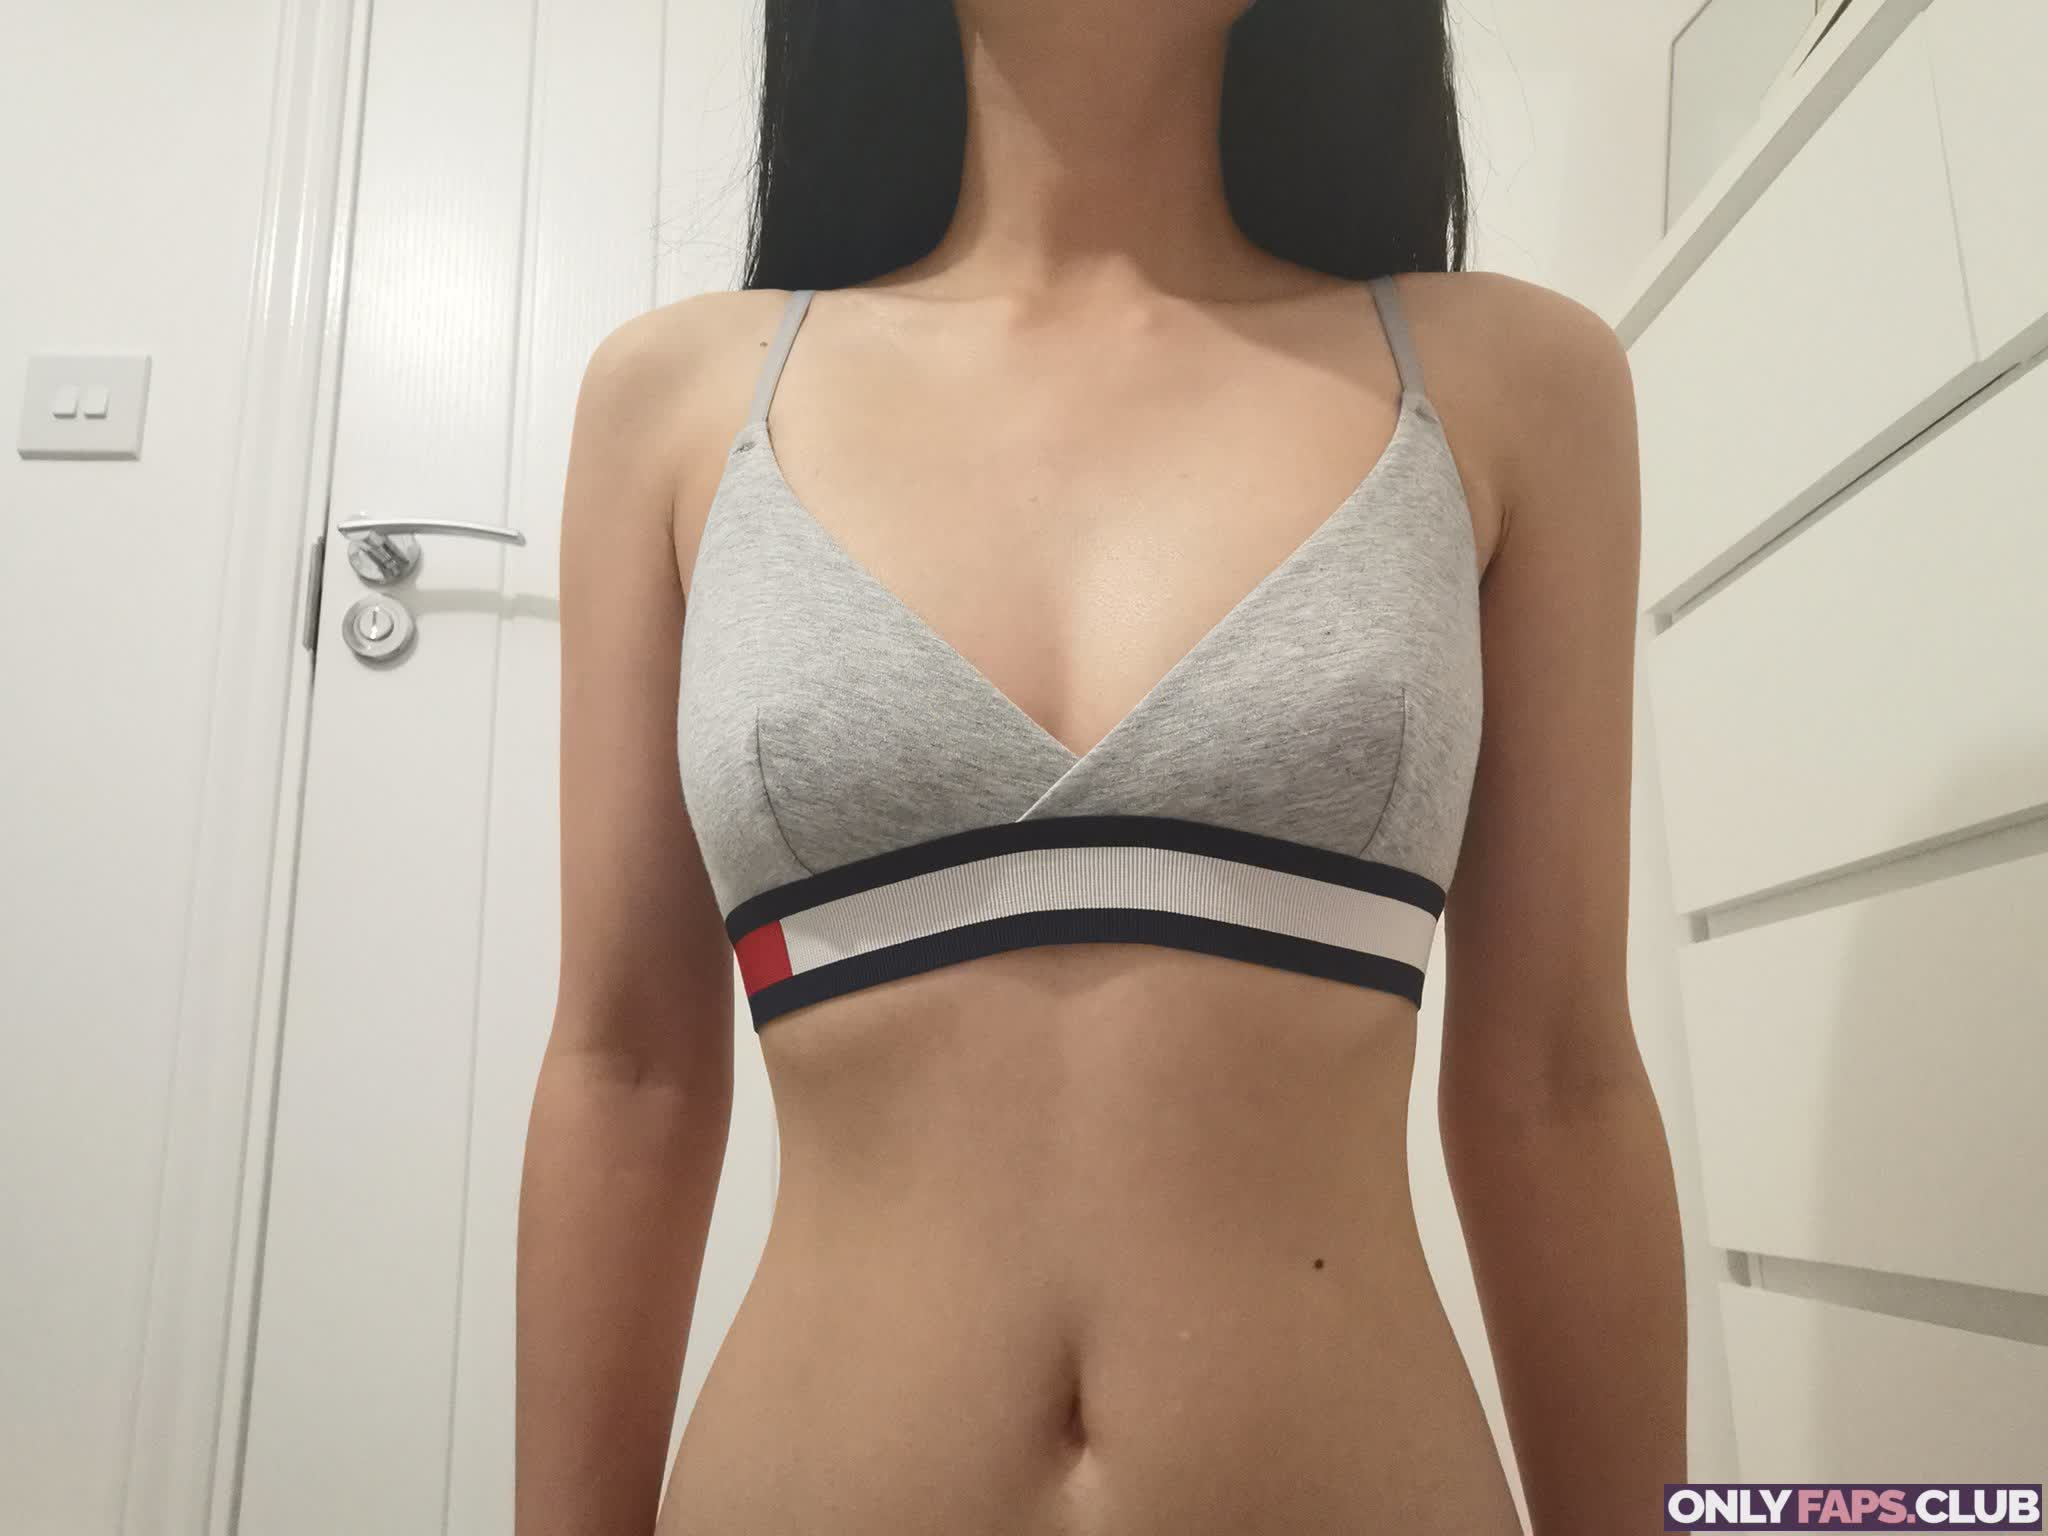 Pixiepecks Nude Leaked OnlyFans (54 Photos)